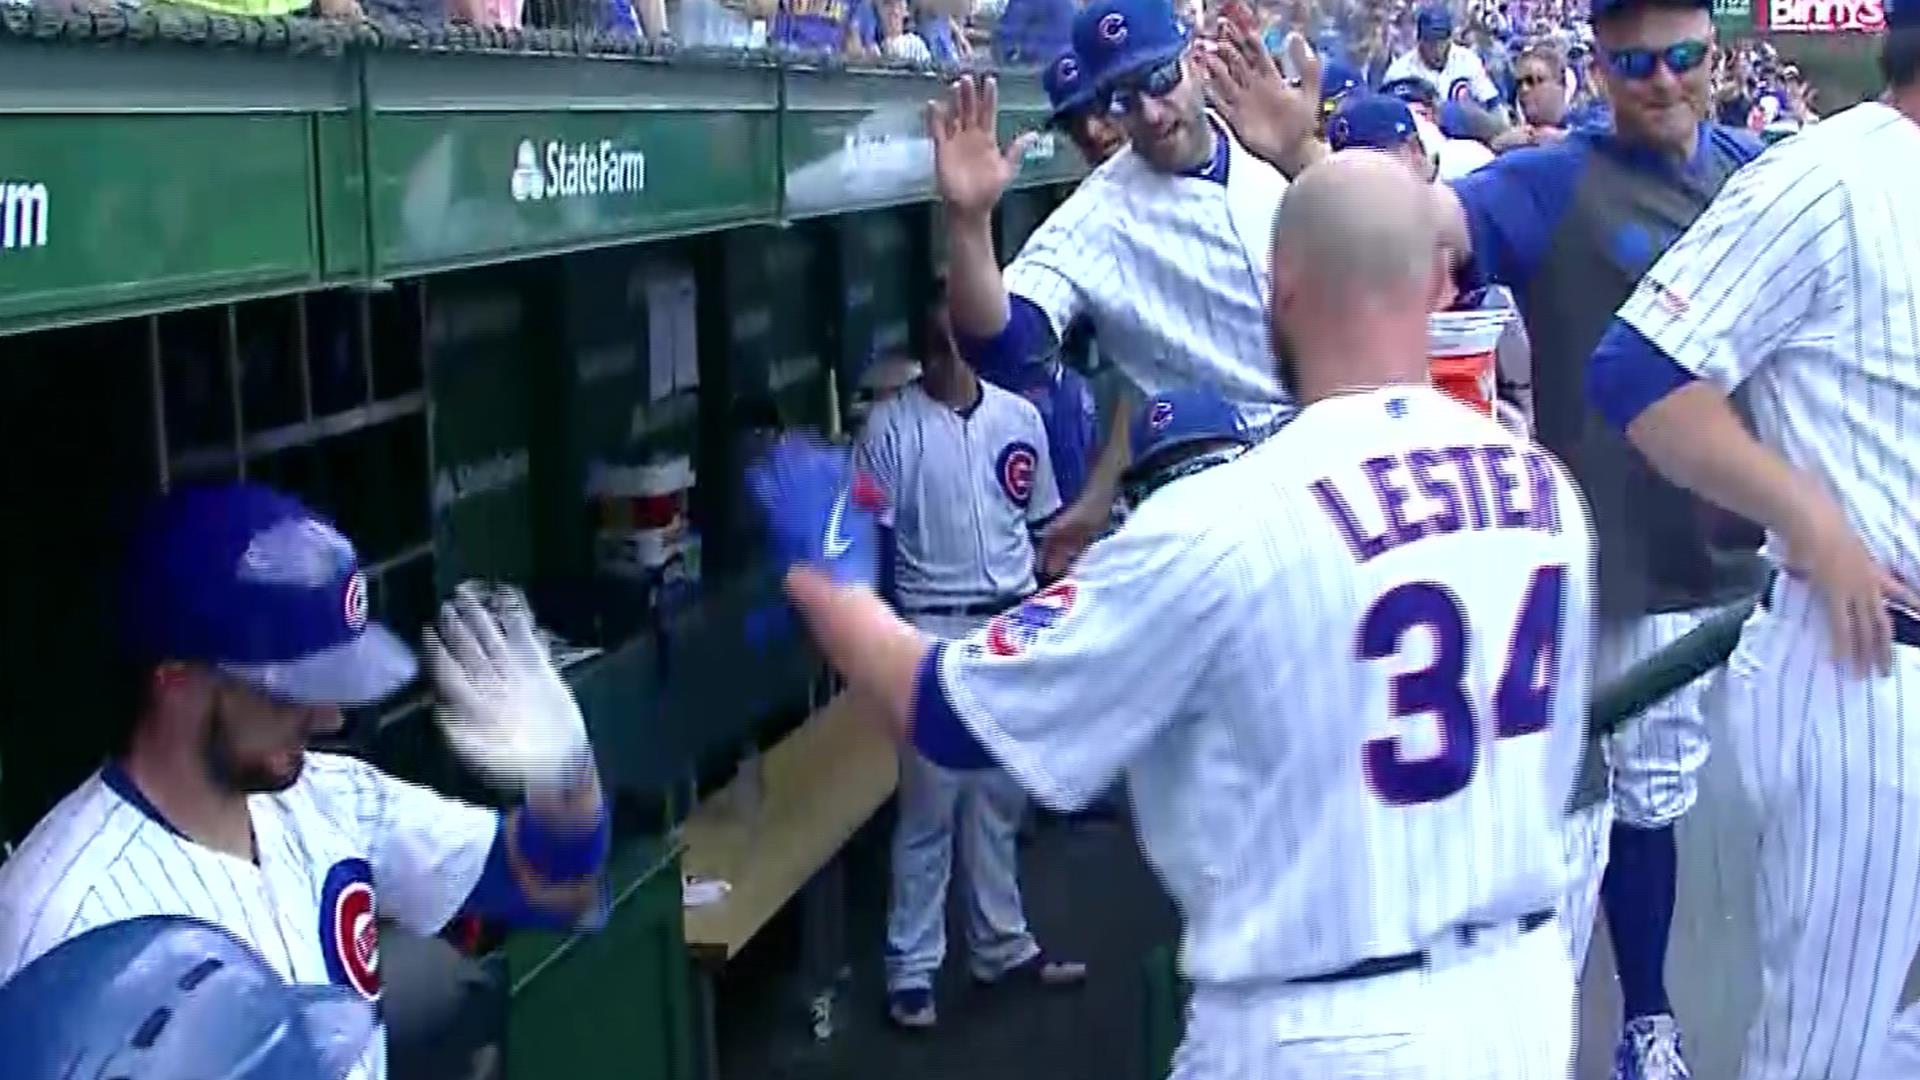 Jon Lester hits home run to add to Cubs onslaught of the Pirates